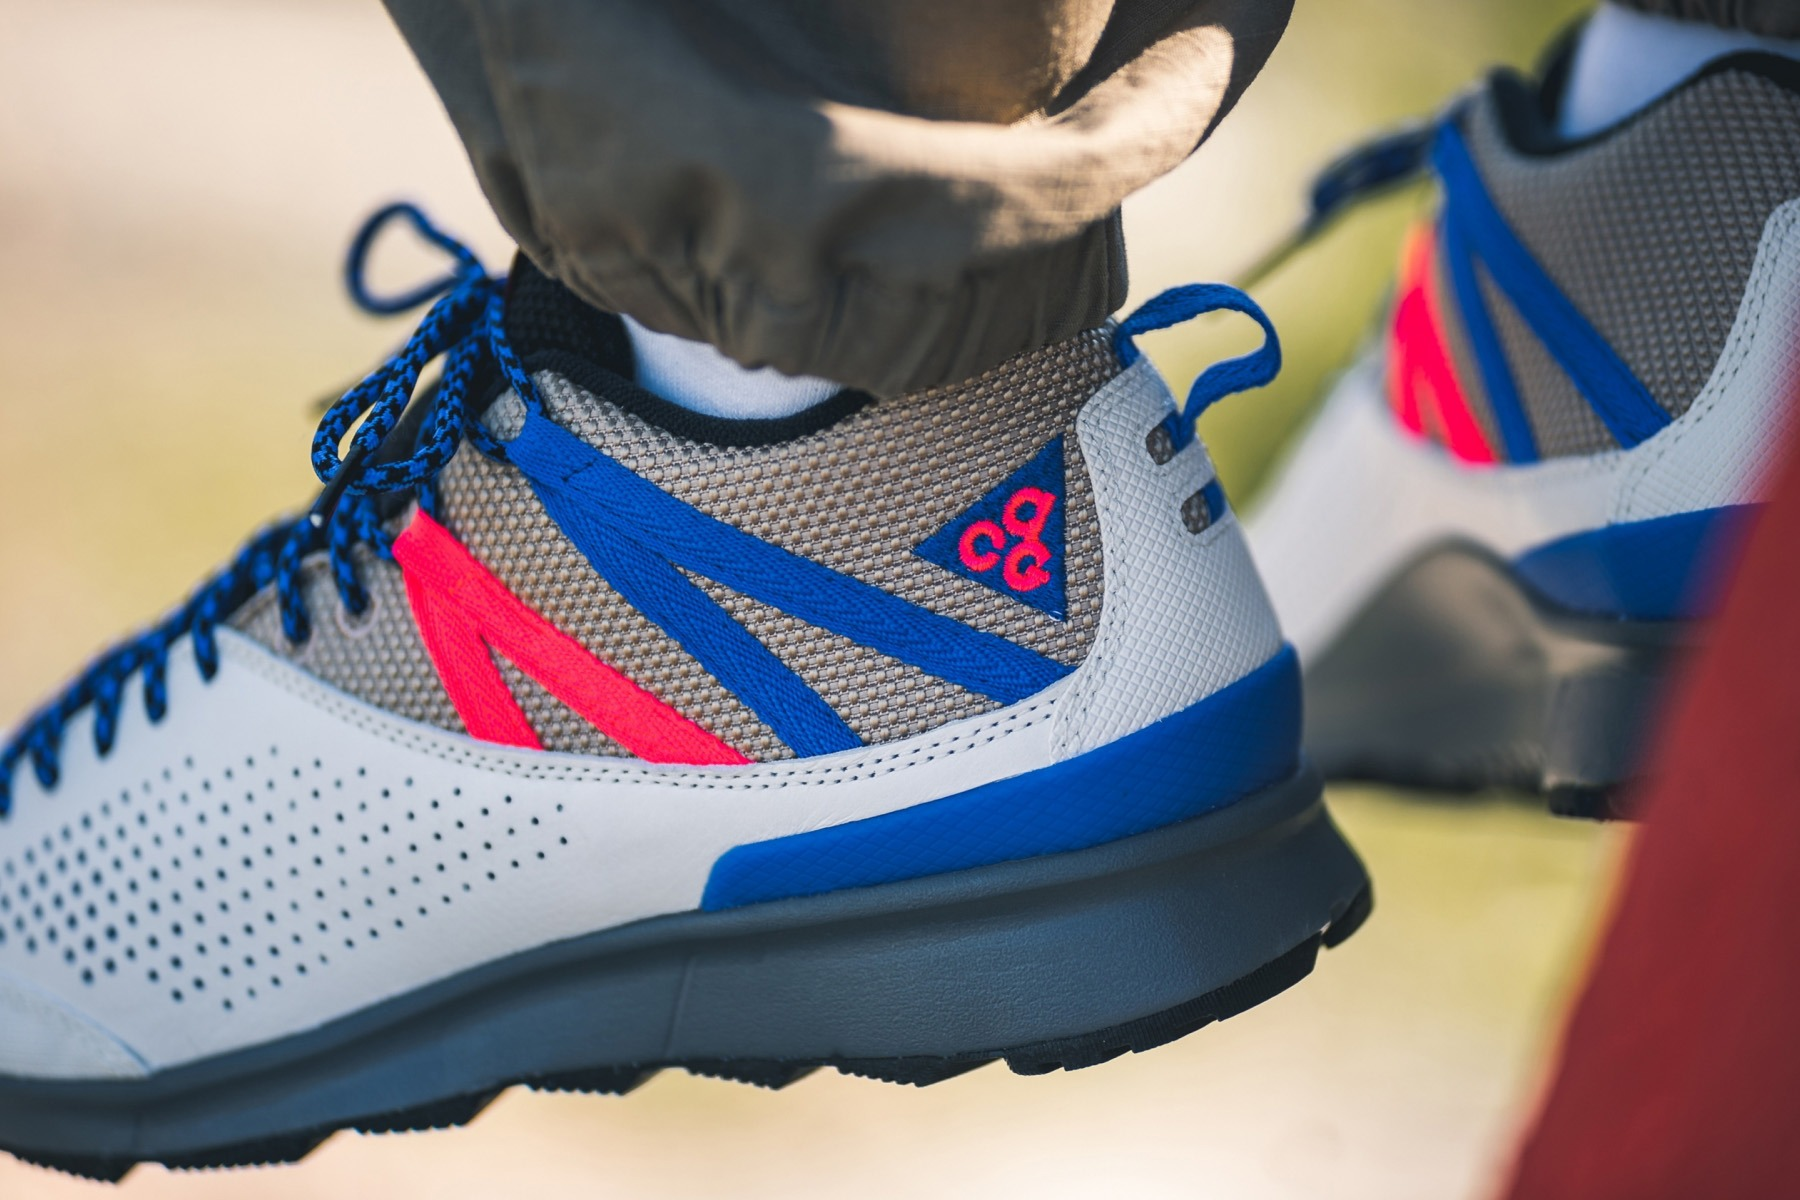 best sneakers 94a72 446d9 This season Nike ACG is launching a new silhouette, the React Terra Gobe.  The All Conditions Gear subset of Nike is also dropping some of his classic  ...